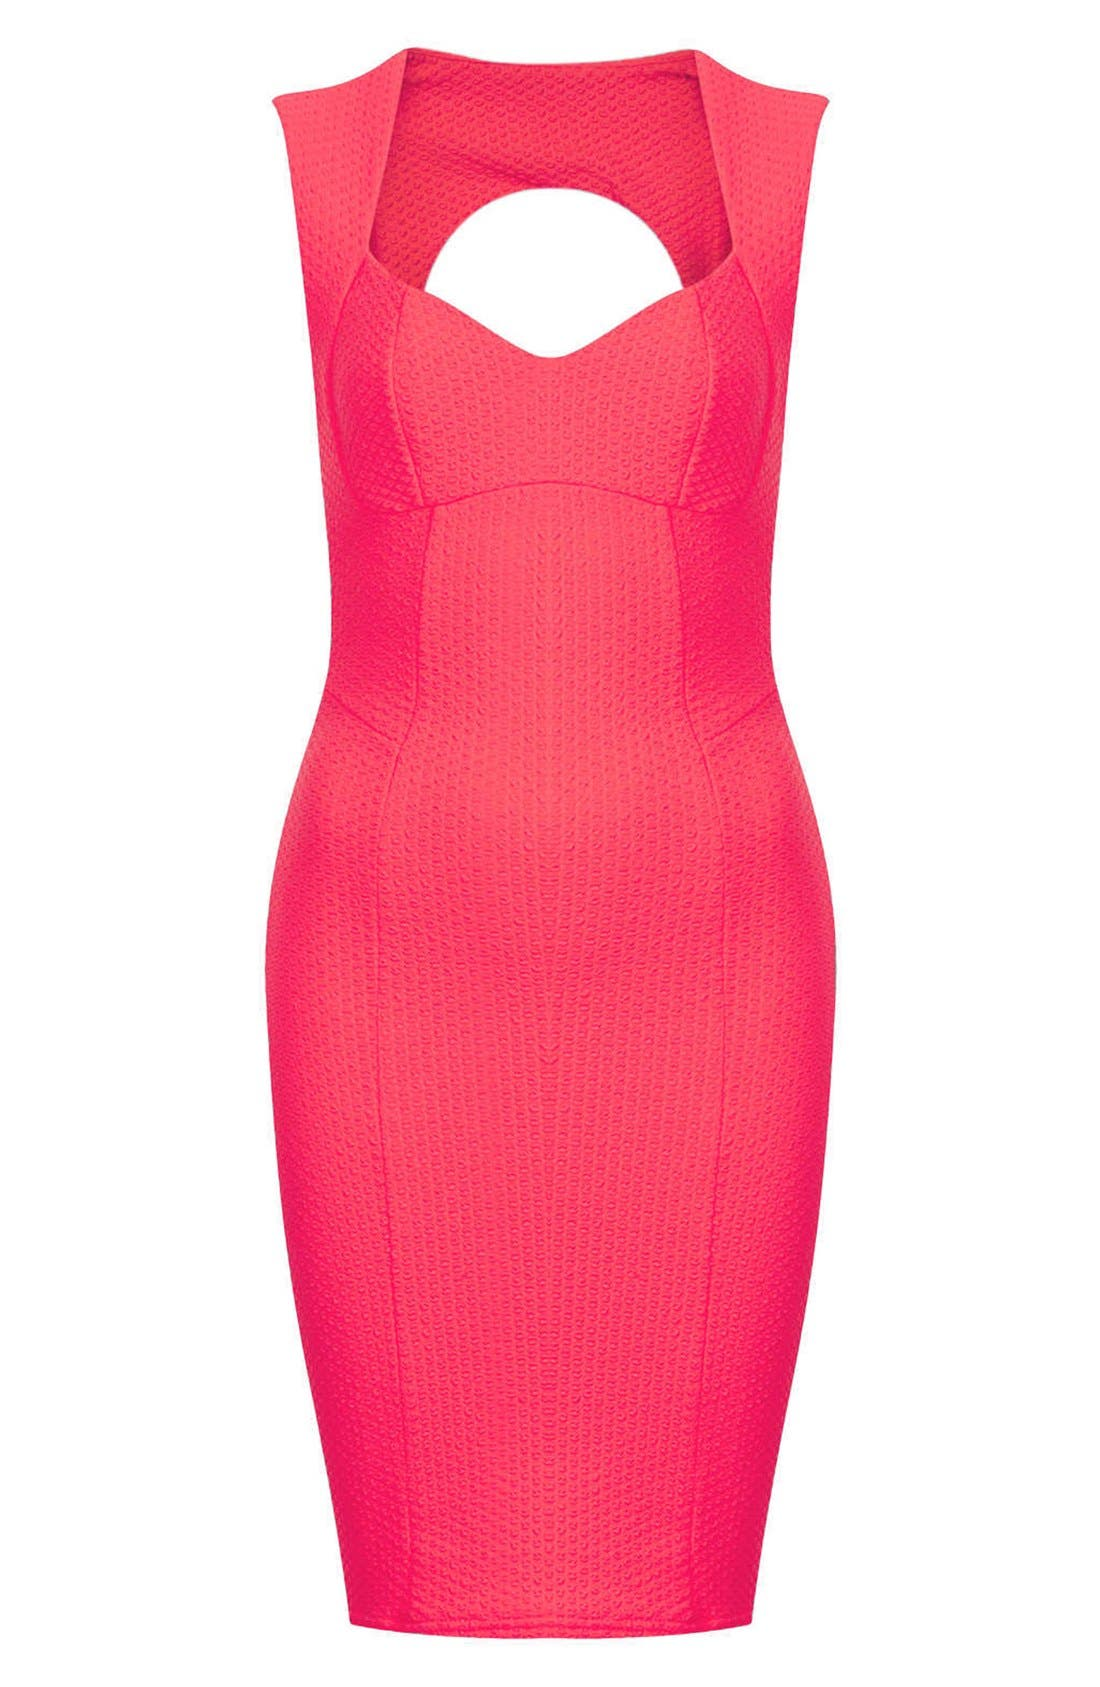 Alternate Image 3  - Topshop Sweetheart Neckline Body-Con Dress (Petite)